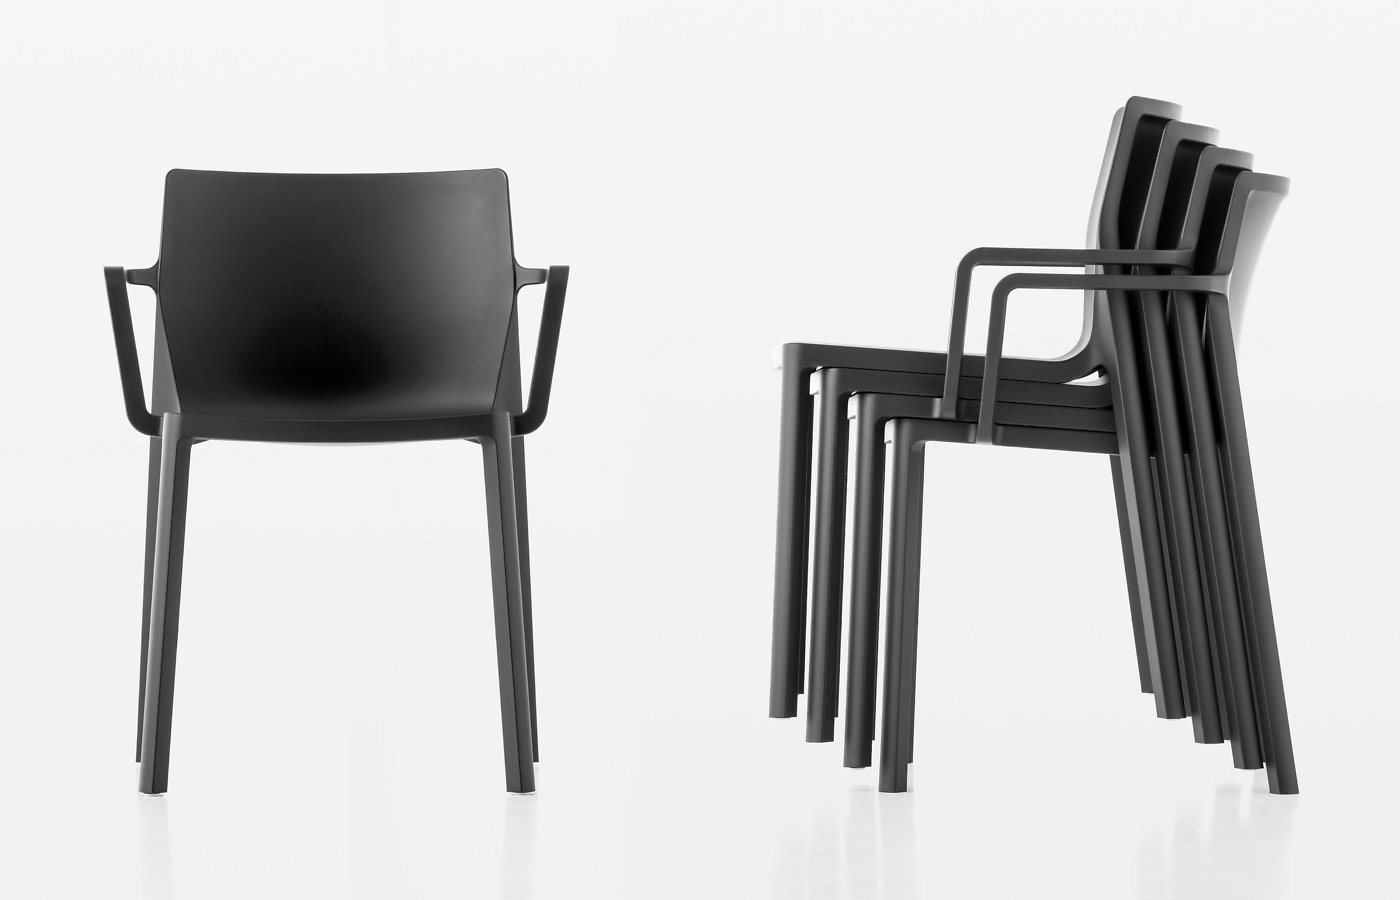 LP Chair from Kristalia, designed by Lucidipevere